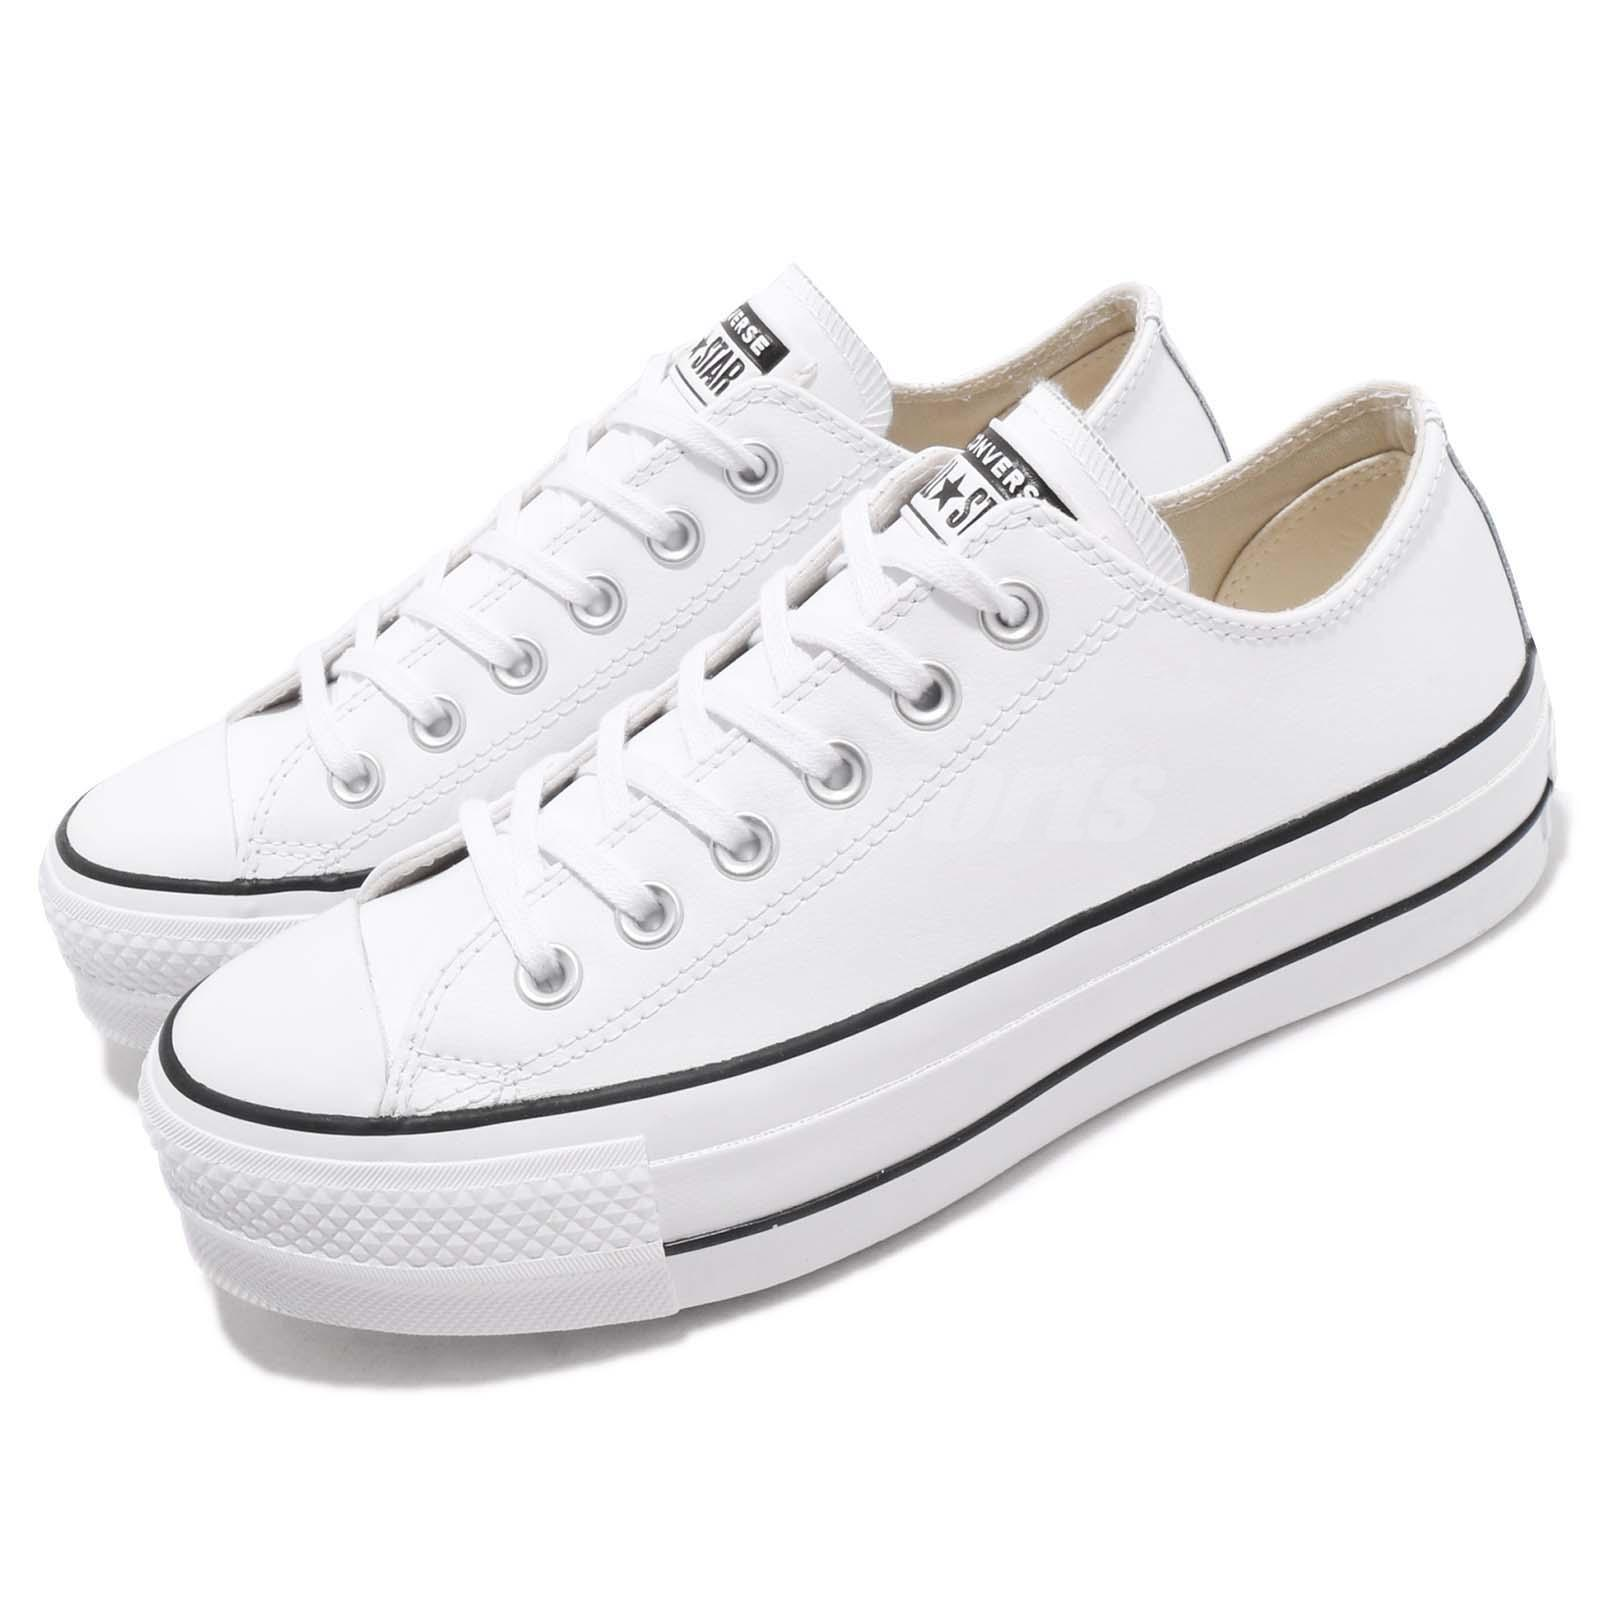 1953603c372116 Details about Converse Chuck Taylor All Star Lift Clean OX White Black  Women Shoes 561680C